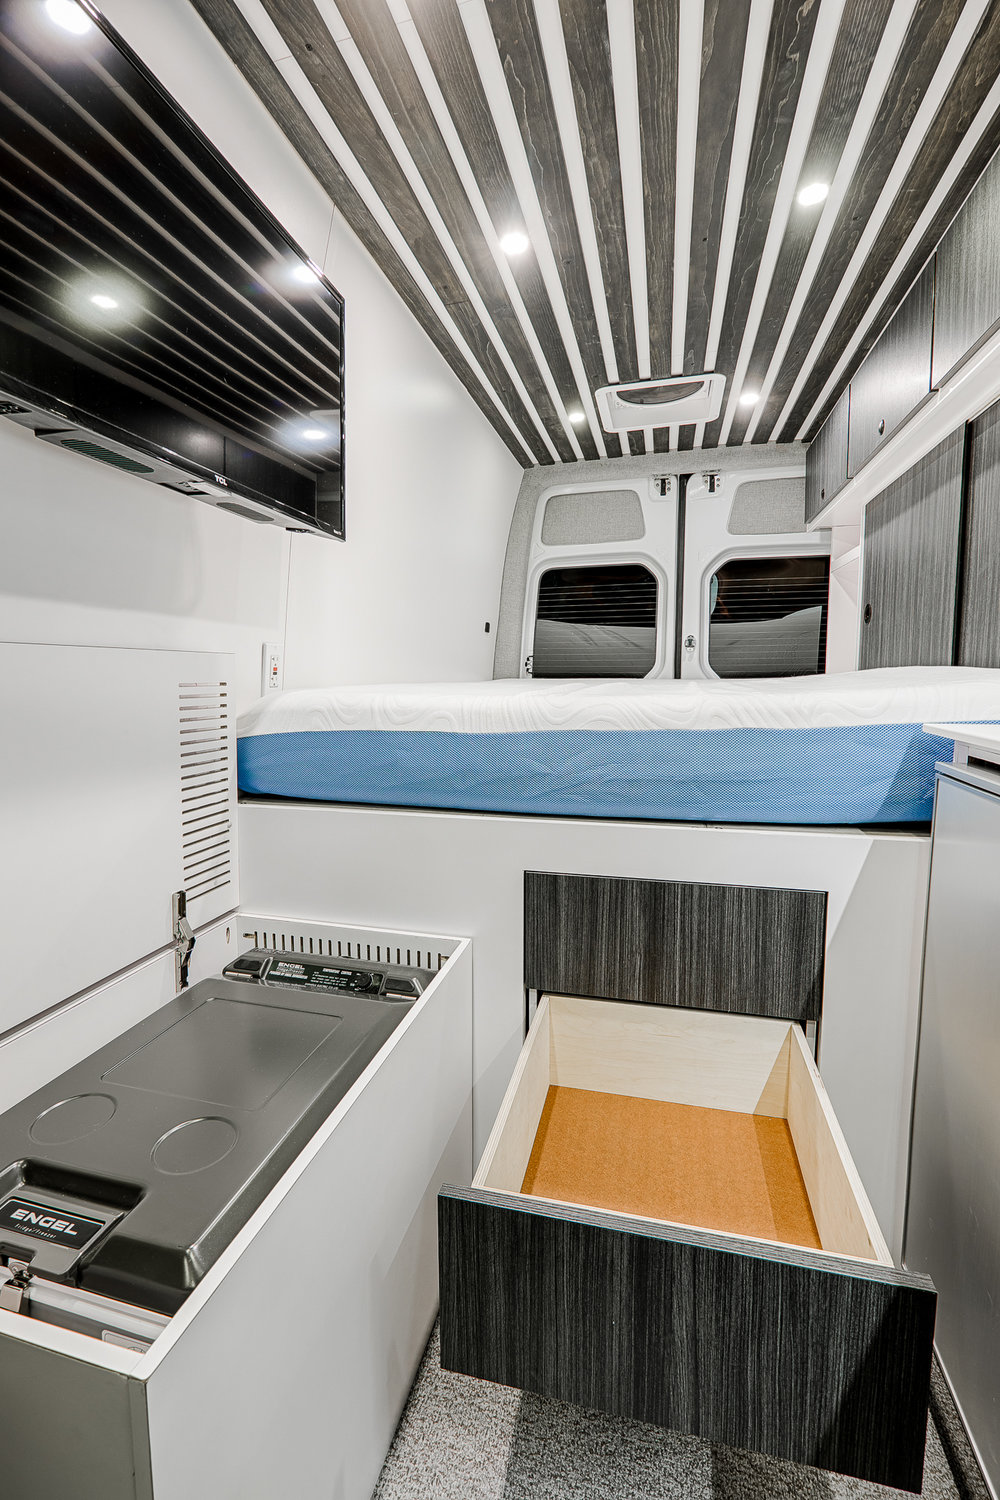 Lift up the storage bench and find the Engel freezer that sits conveniently next to the three drawer Pushloc system.